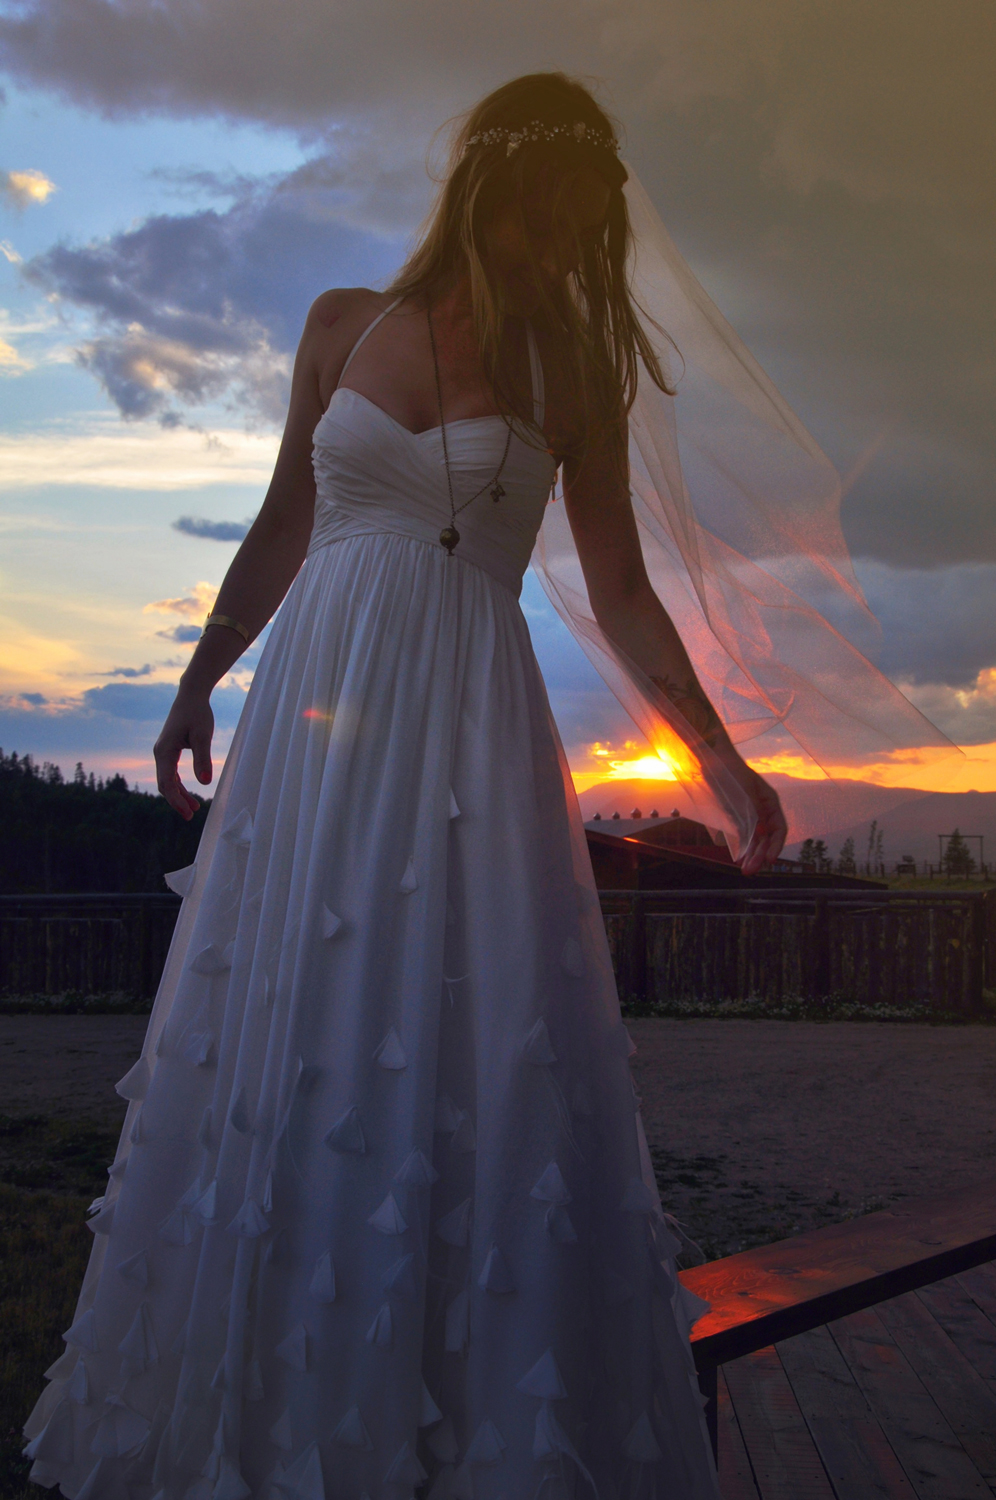 25. Weddings-Bride-Sunset-Veil_Carly-Carpenter.jpg